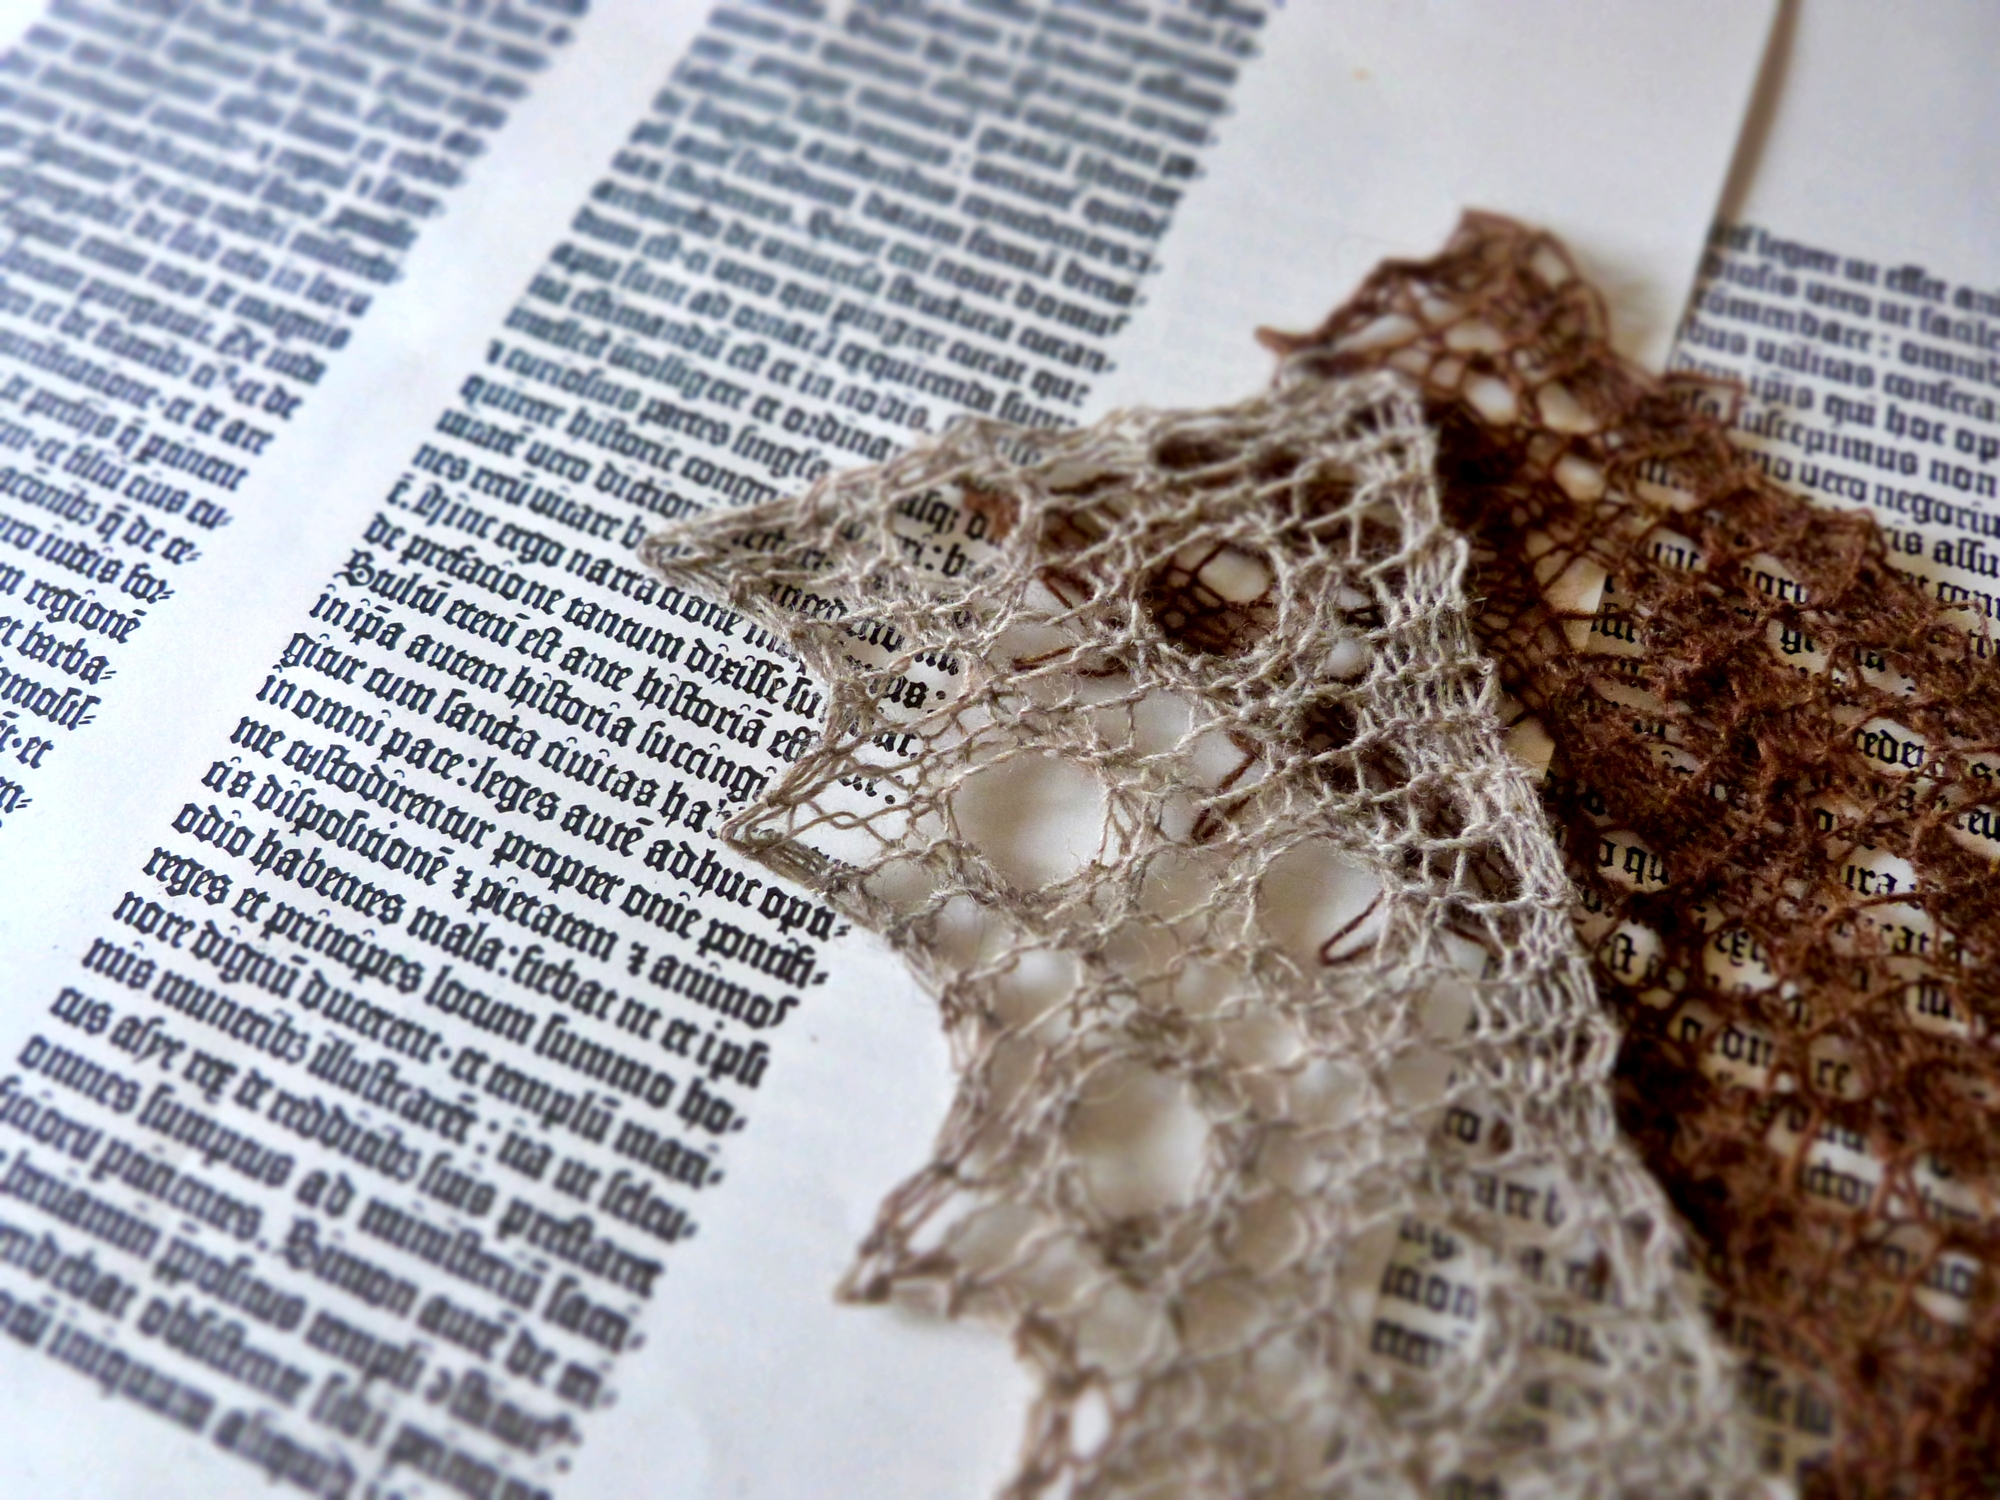 Lace design elements inspired by 14th-16th century primary sources